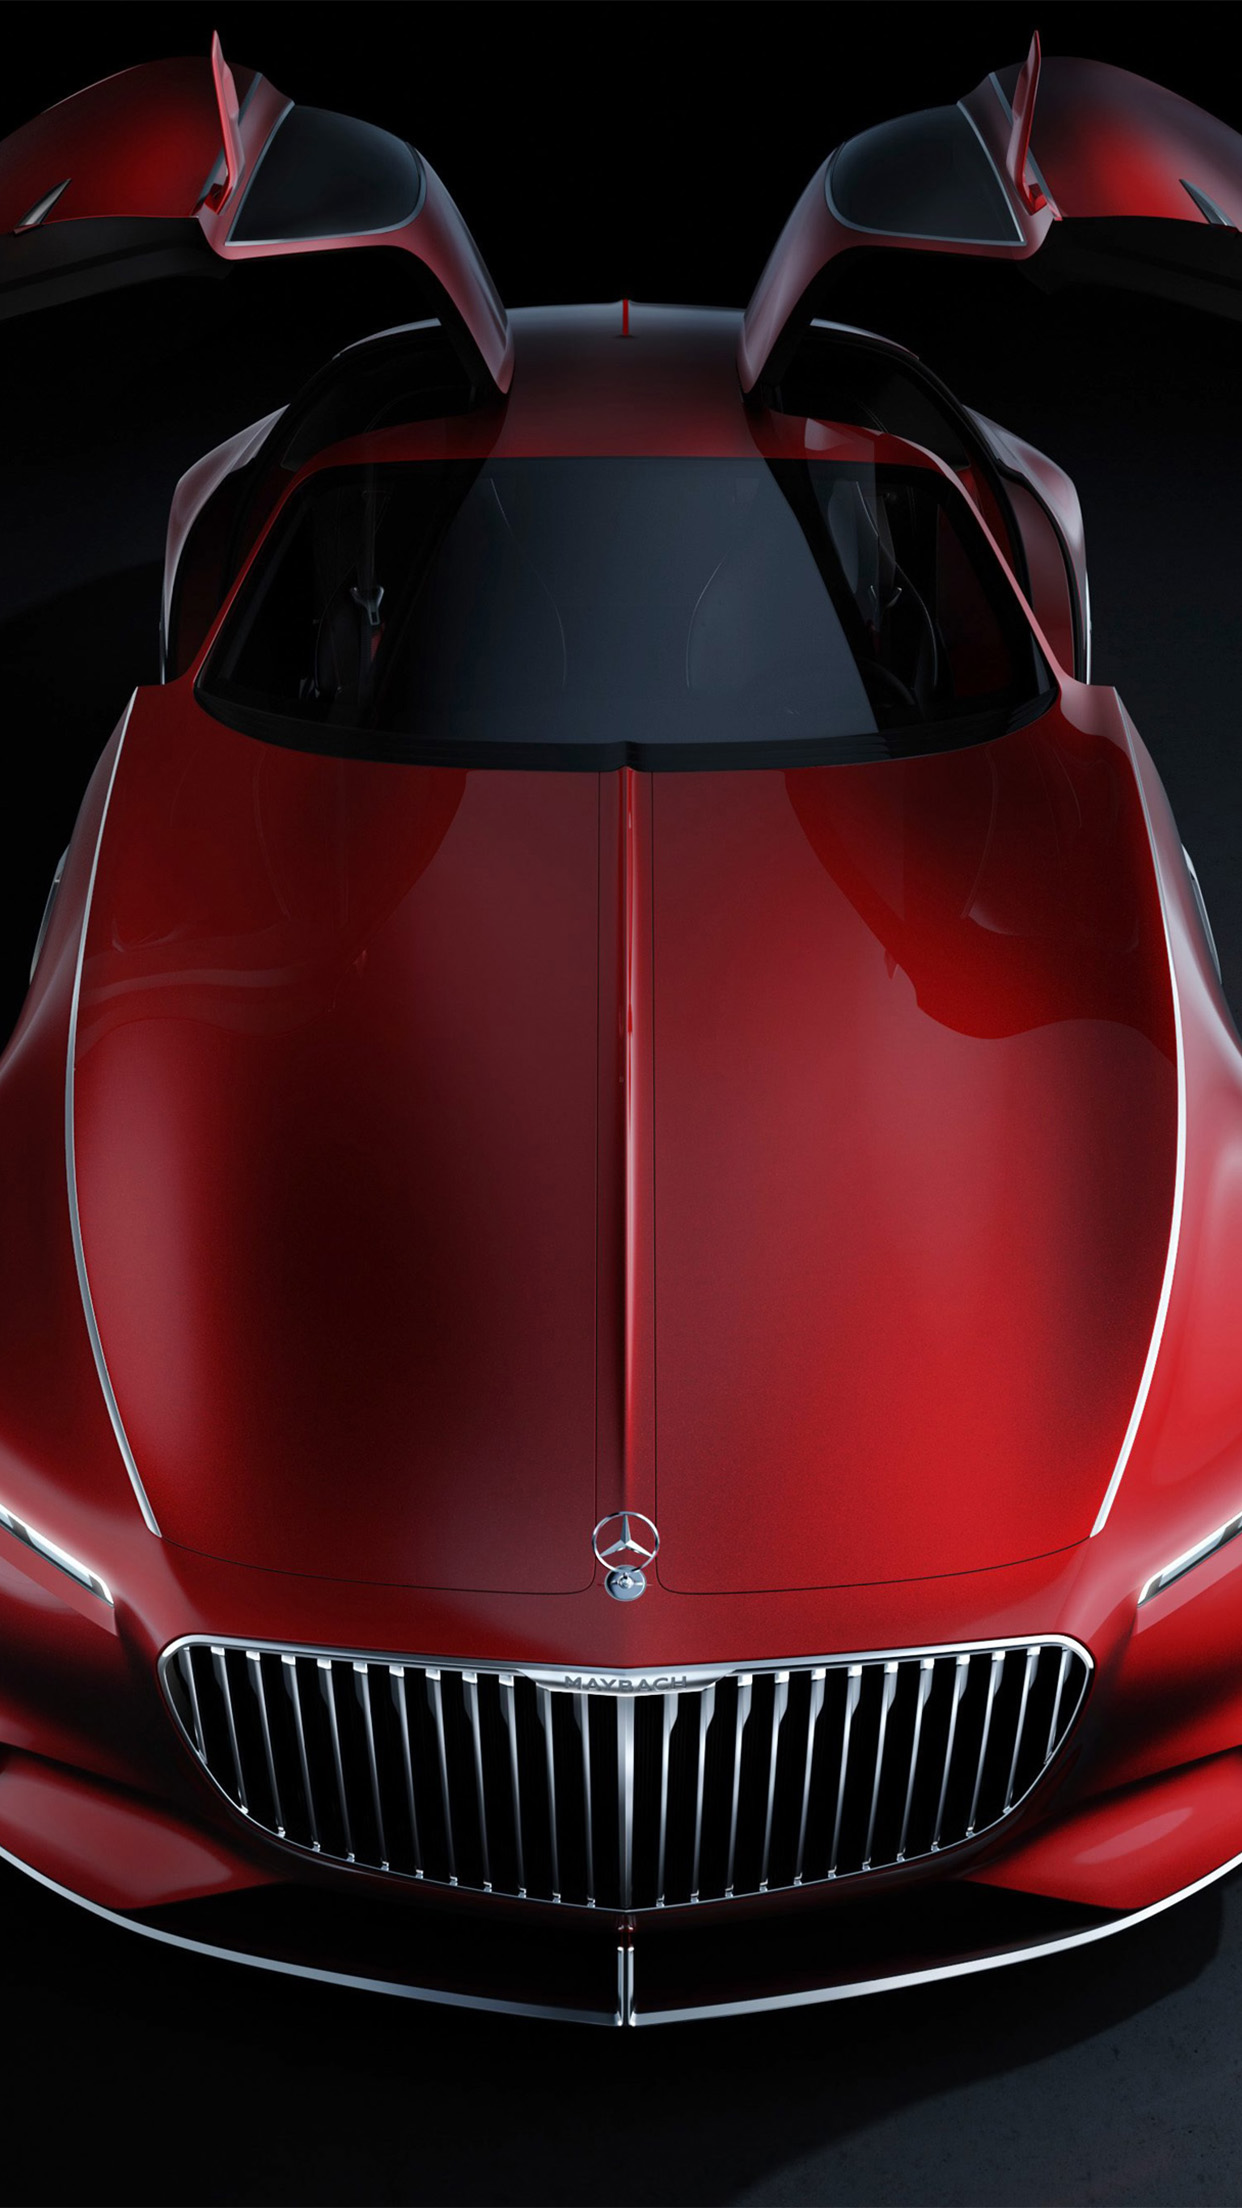 Mercedes Maybach Vision 6 Mercedes Maybach Vision 6 Front 3Wallpapers iPhone Parallax Mercedes Maybach Vision 6  Front